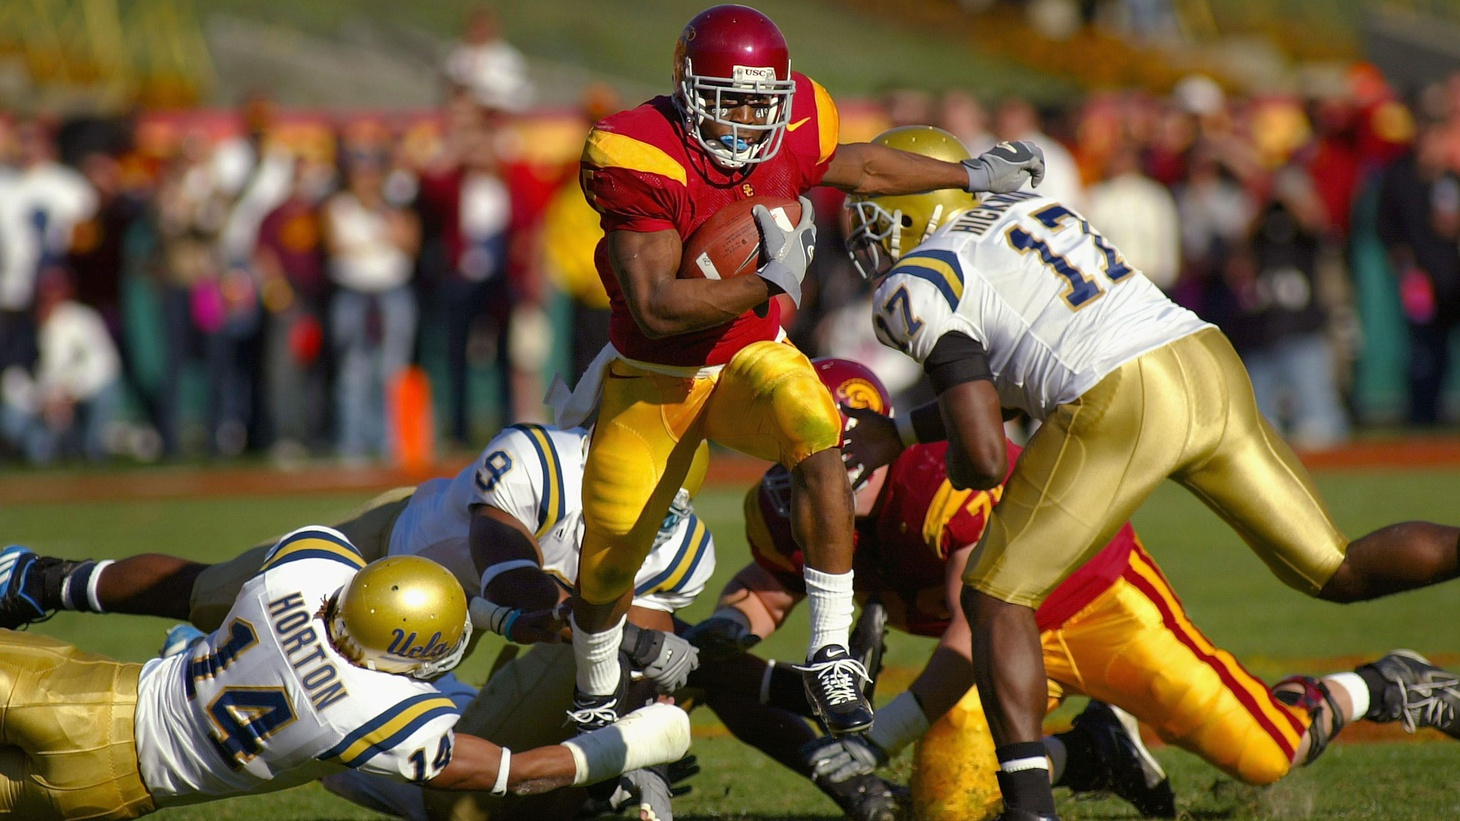 USC's football team will be banned from bowl games for two years and deprived of athletic scholarships. At the same time, the PAC-10 Athletic Conference is expanding. We look at what's supposed to be amateur sports -- and the influence of money. Also, the attacks are already flying in the race for Attorney General. On our rebroadcast of To the Point, will the President's moratorium on deep-water exploration have as much impact on the Gulf state's economy as the oil spill?